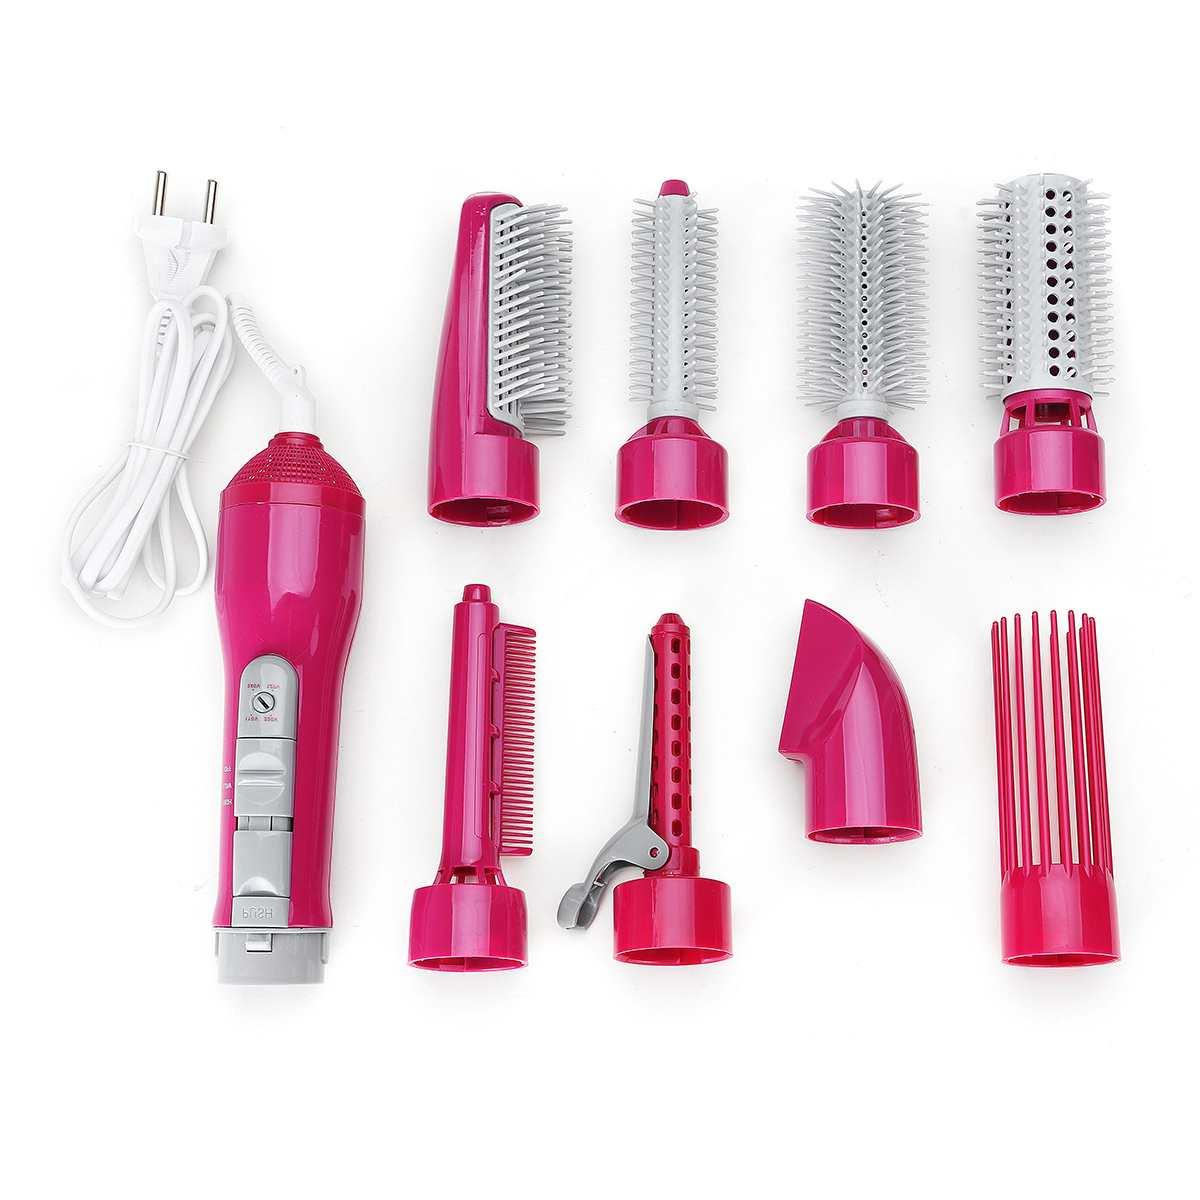 220V 8-in-1 Hair Curler Straightener Curling <font><b>Hot</b></font> <font><b>Air</b></font> Styler Curler Roller Curls